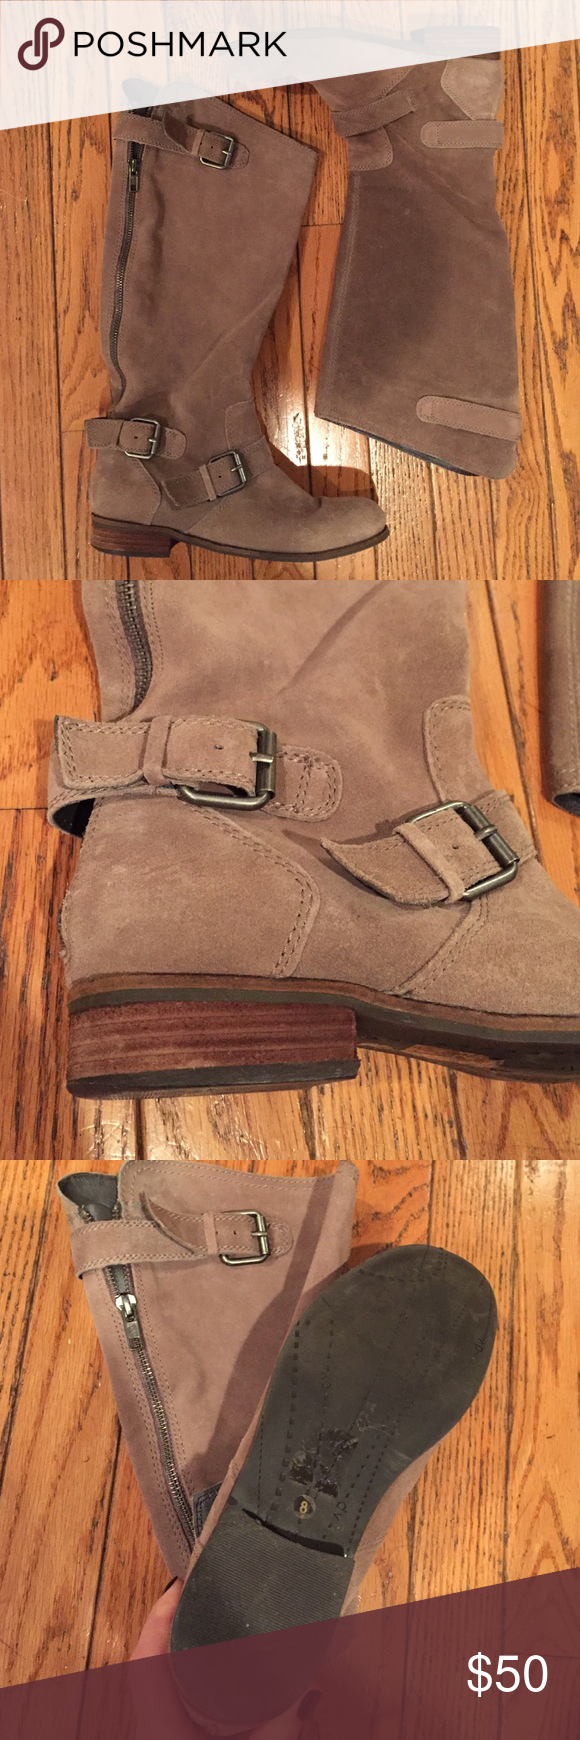 Dolce Vita Taupe Boots. Worn once! Dolce Vita taupe boots with buckle and zipper detailing. Worn once or twice. Look brand new! Dolce Vita Shoes Combat & Moto Boots